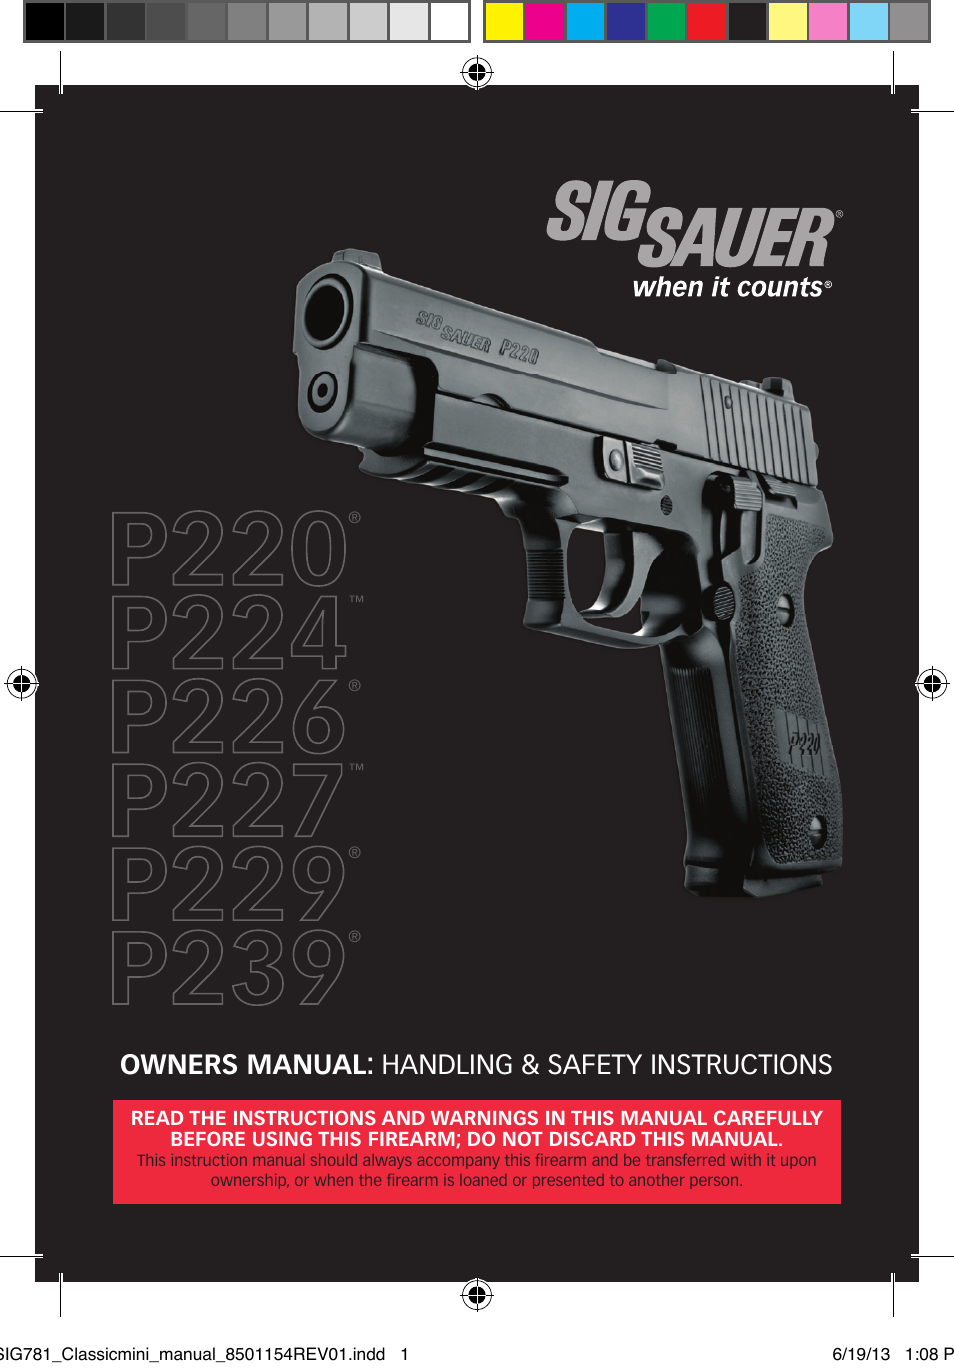 sig sauer p229 user manual 88 pages also for p227 p226 p224 rh manualsdir com sig sauer p320 user manual sig sauer owners manual